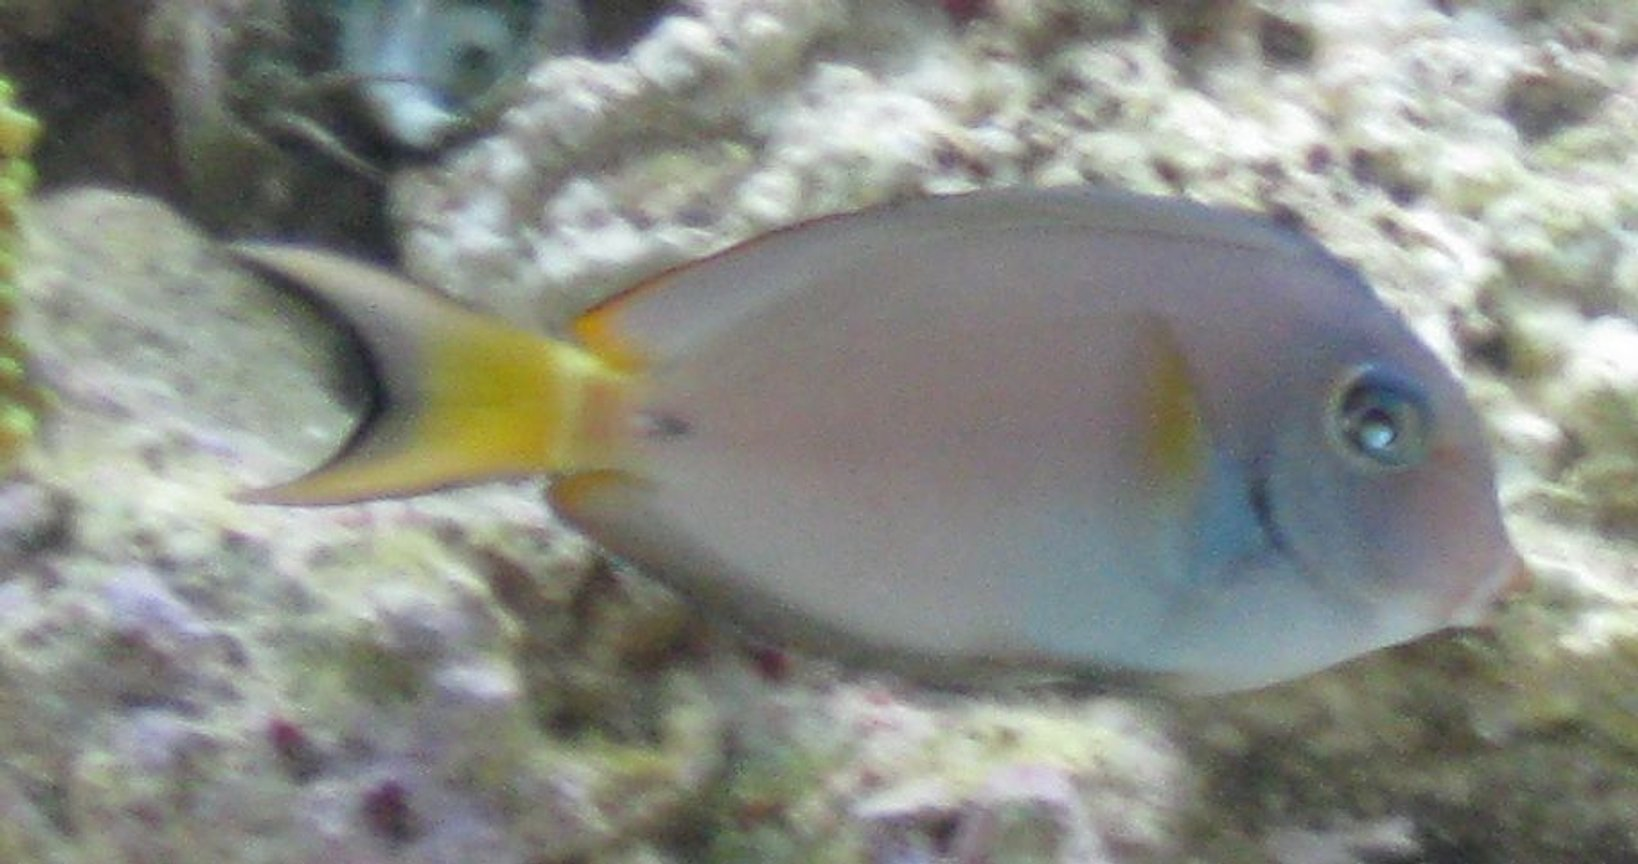 saltwater fish - acanthurus leucocheilus - white face tang stocking in 75 gallons tank - Rare Juvenile Acanthurus Leucocheilus AKA Pale Lipped Surgeon Fish